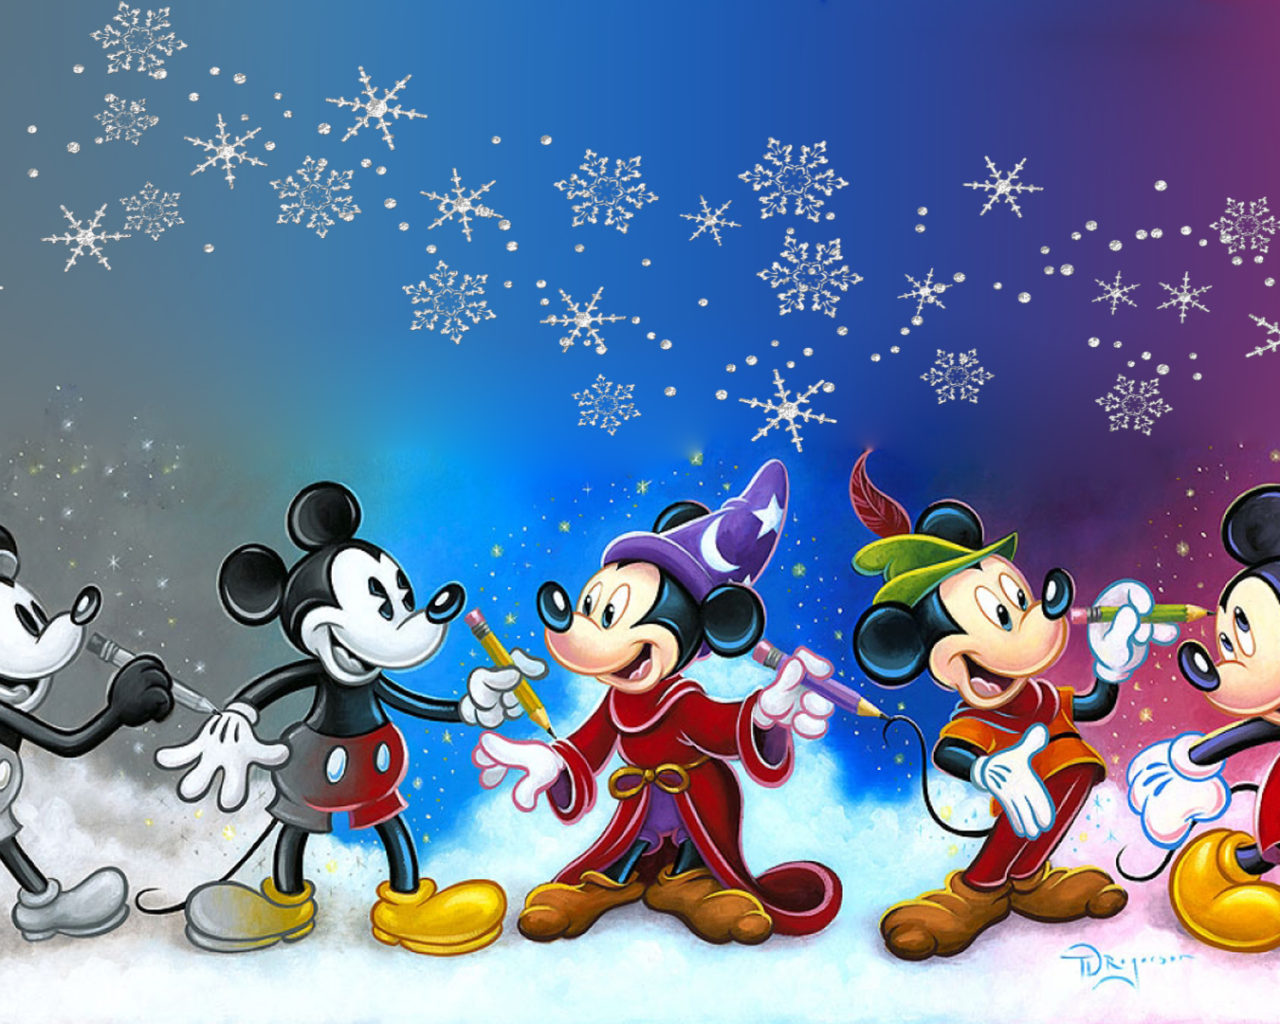 Car Wallpaper Free Download For Android Mickey Mouse Cartoons Art Cinemascopic Desktop Wallpaper